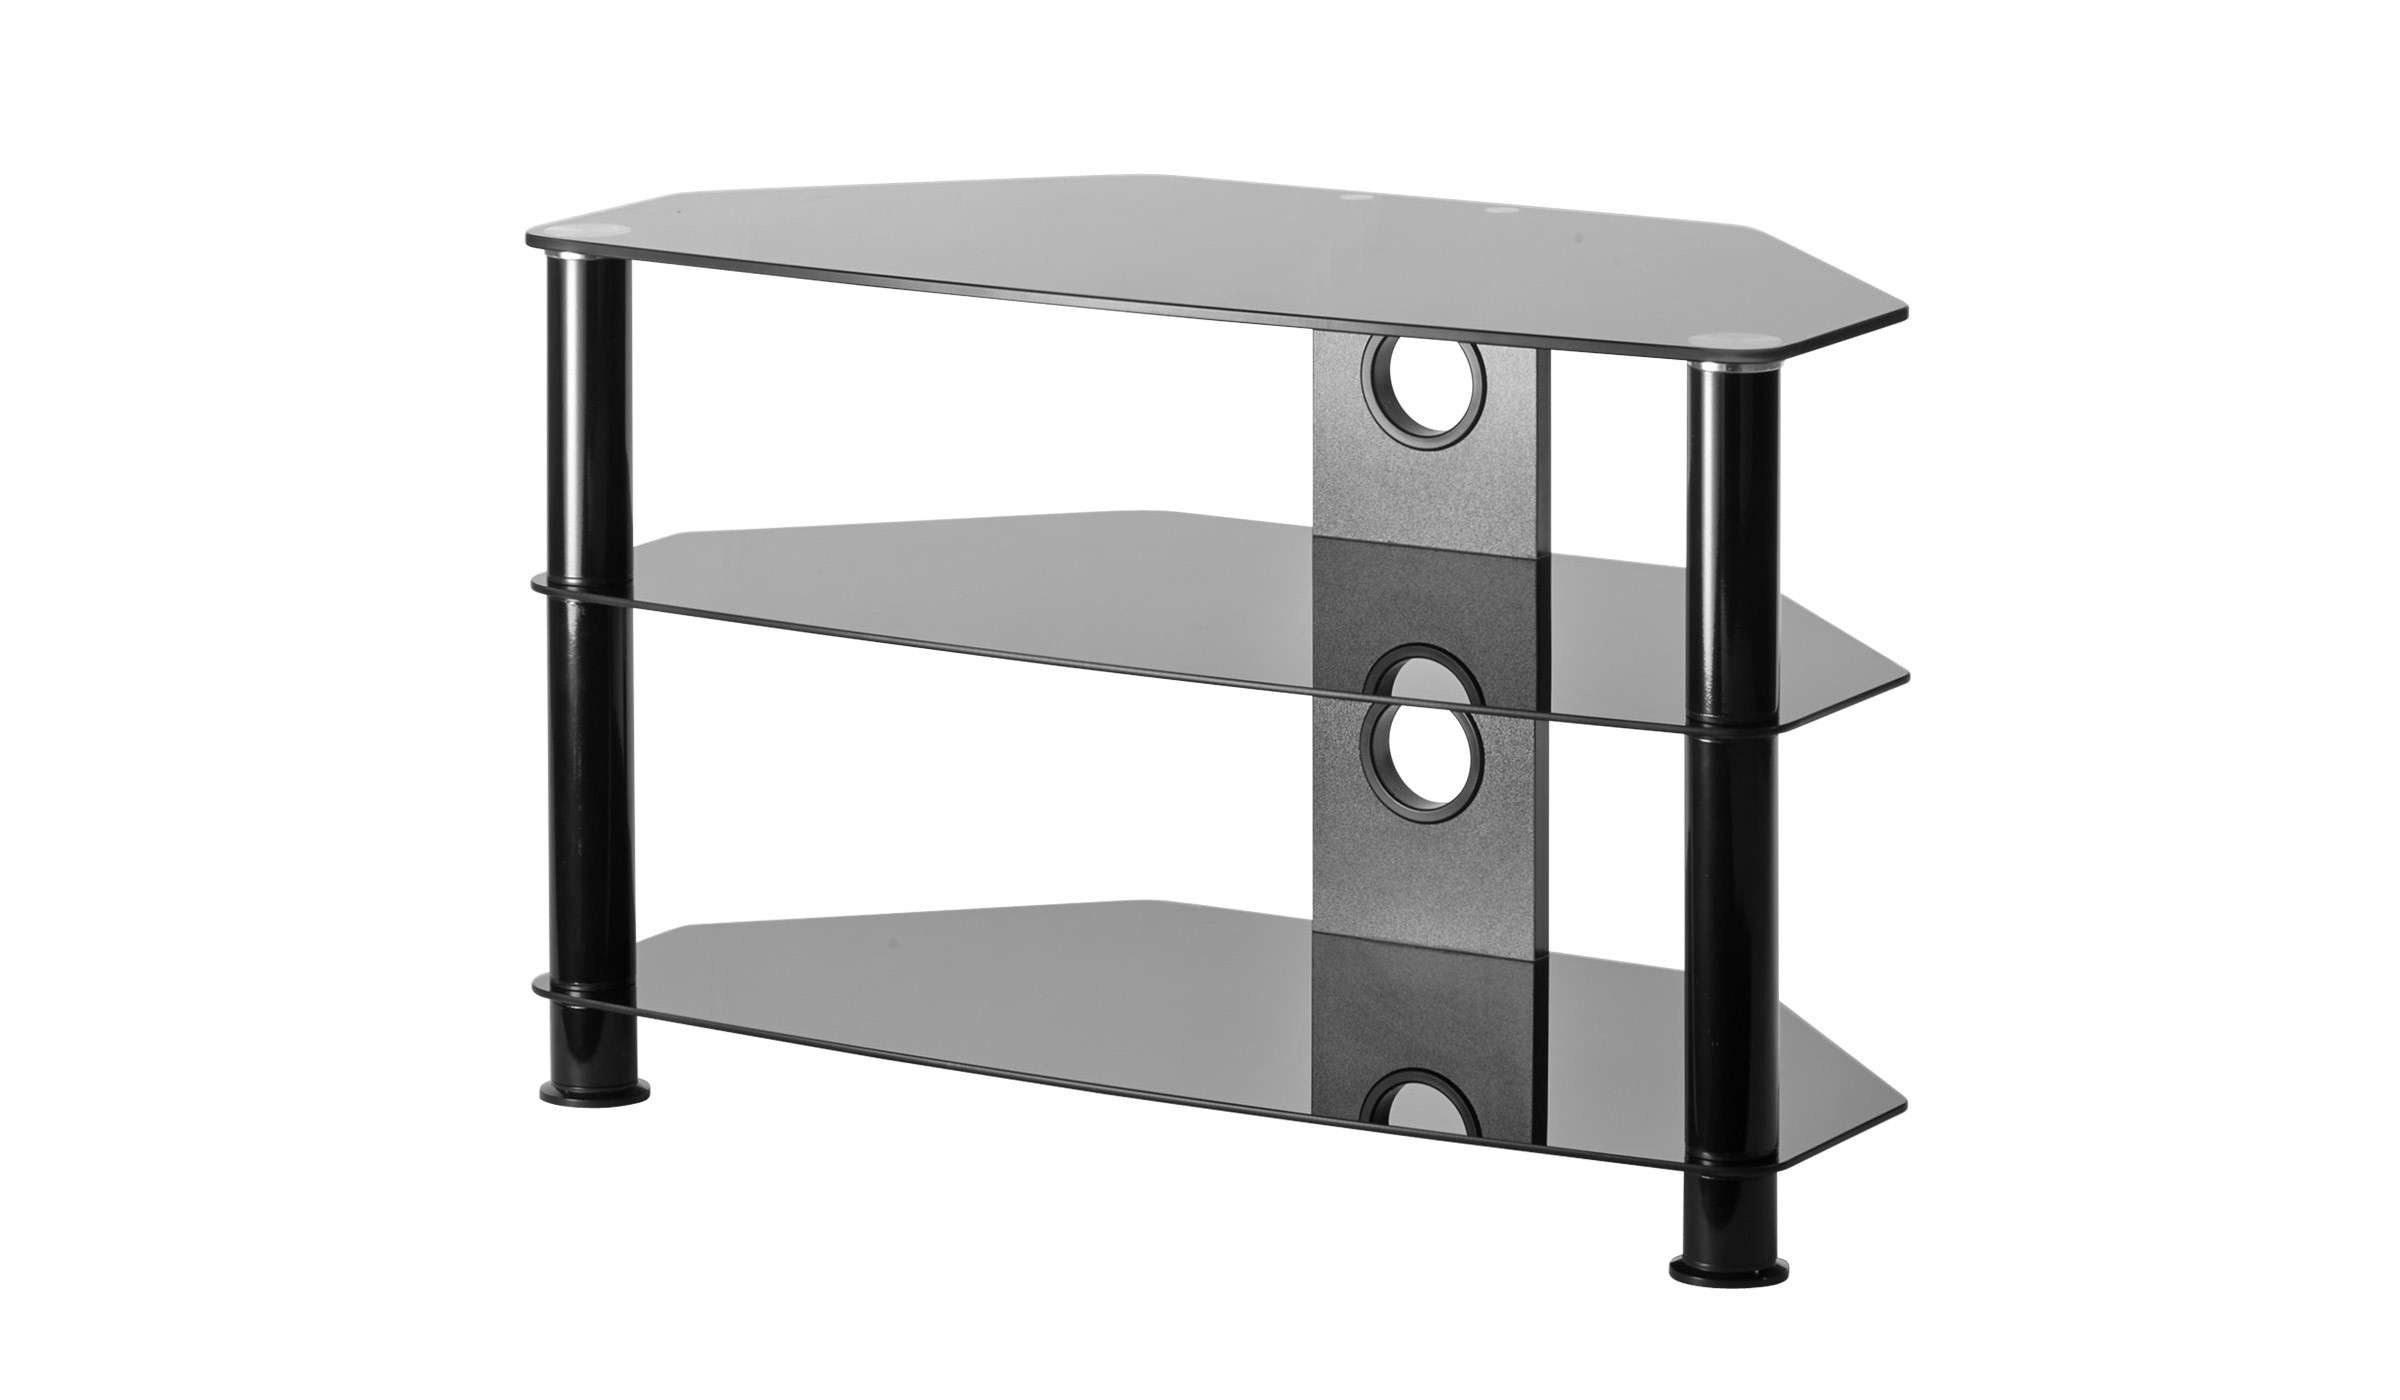 Glass Tv Stands & Tv Cabinets | Tv Wall Brackets & Mounts Intended For Black Gloss Corner Tv Stands (View 7 of 15)